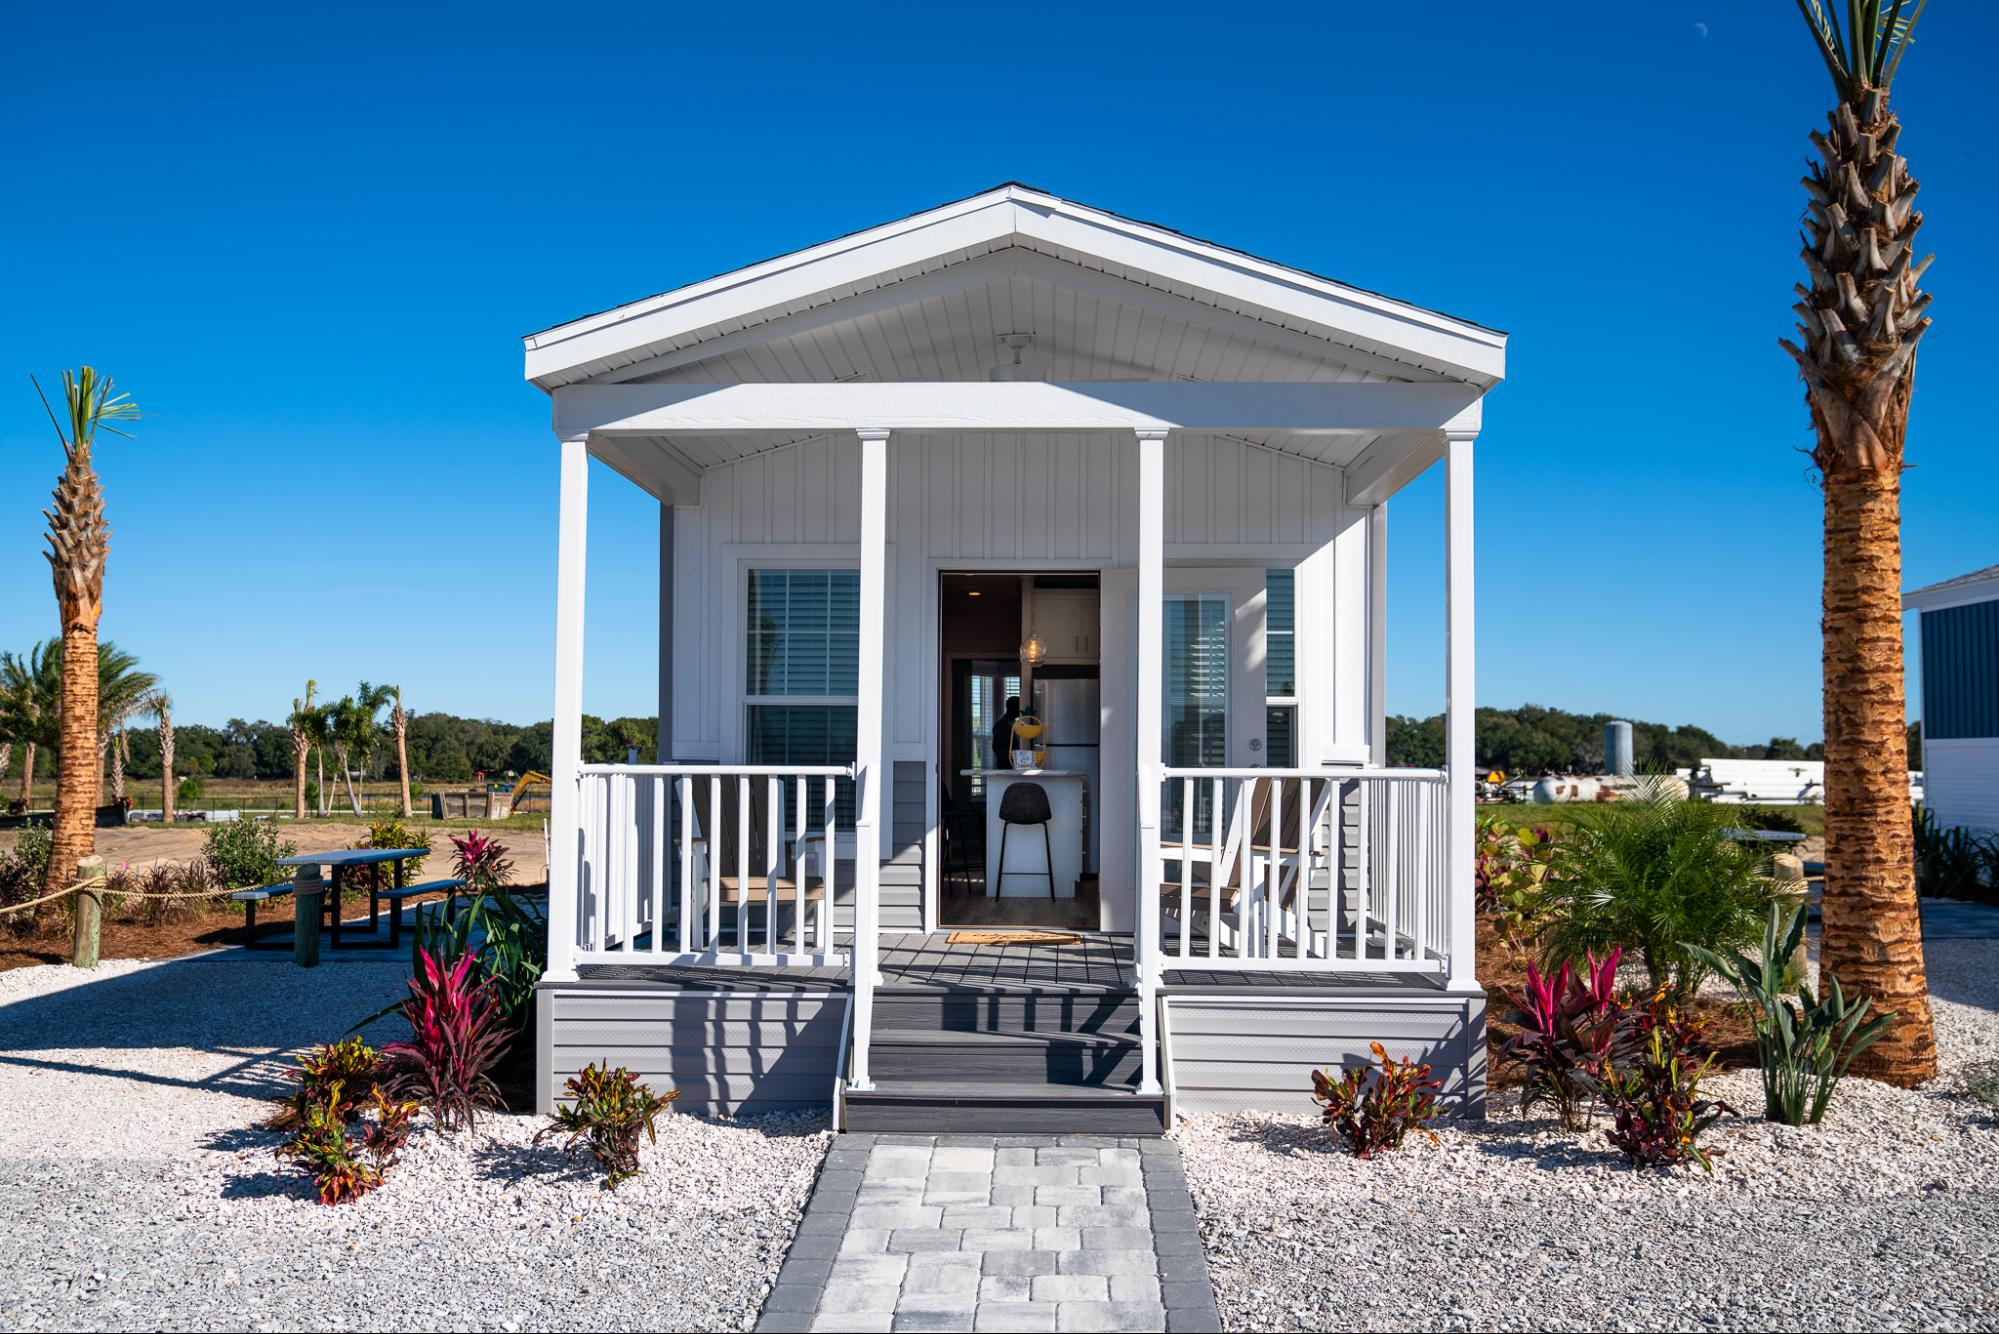 Cabana Club RV Resort and cottages